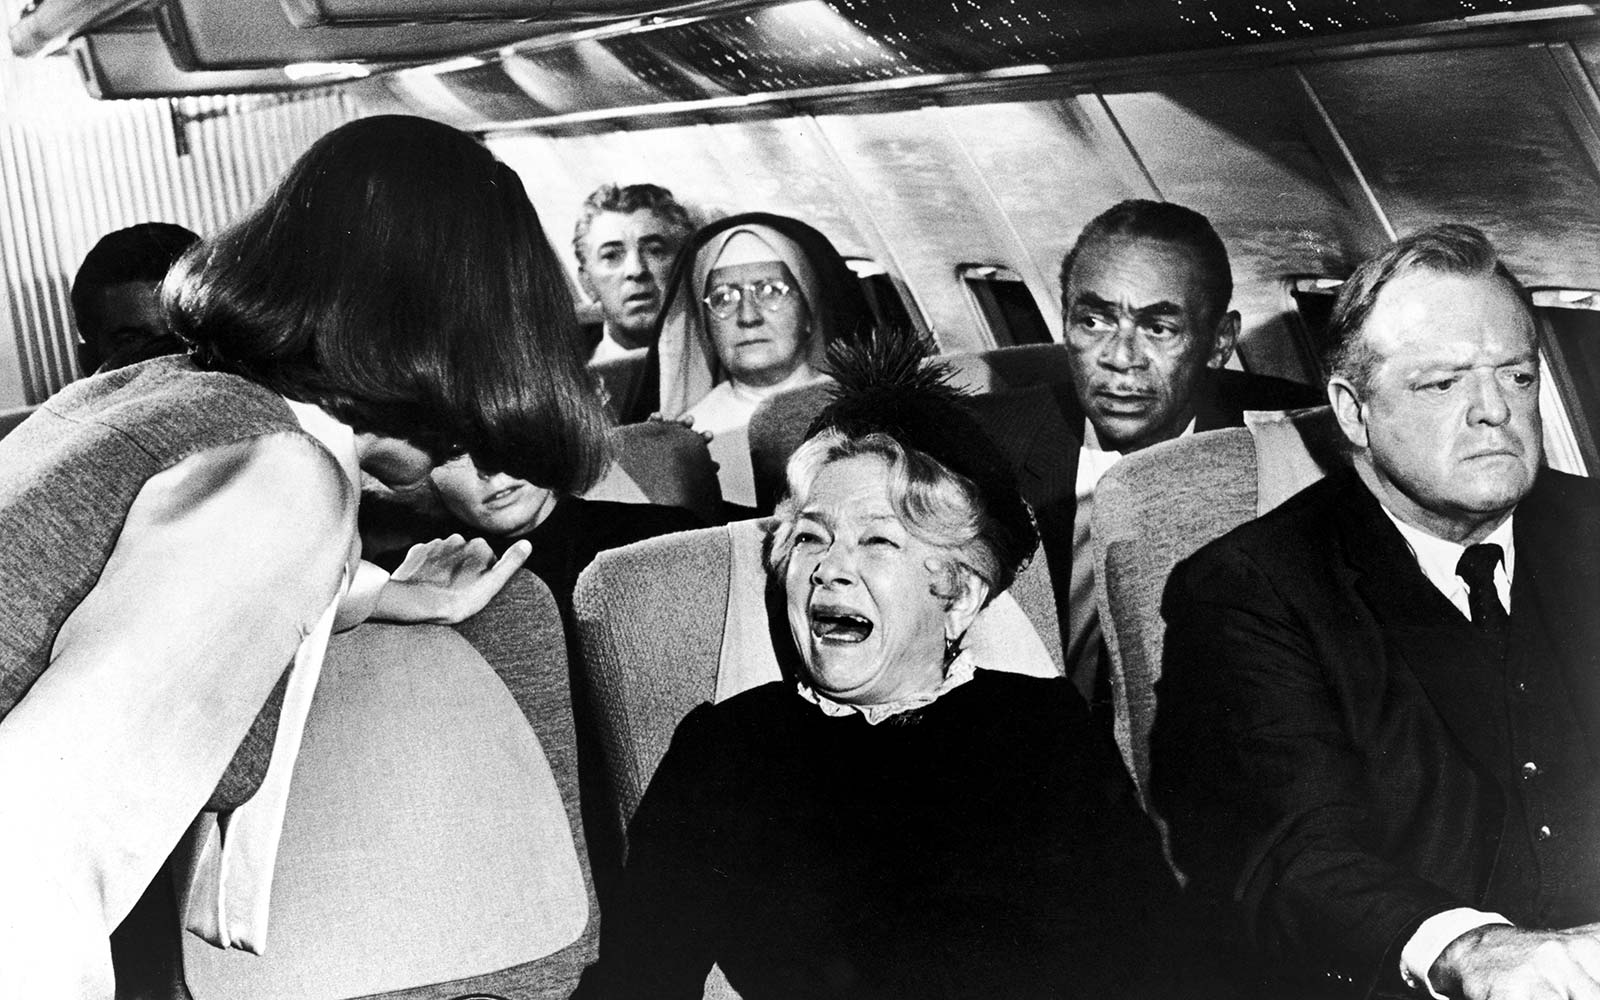 Cry hysterical tears airplane flight